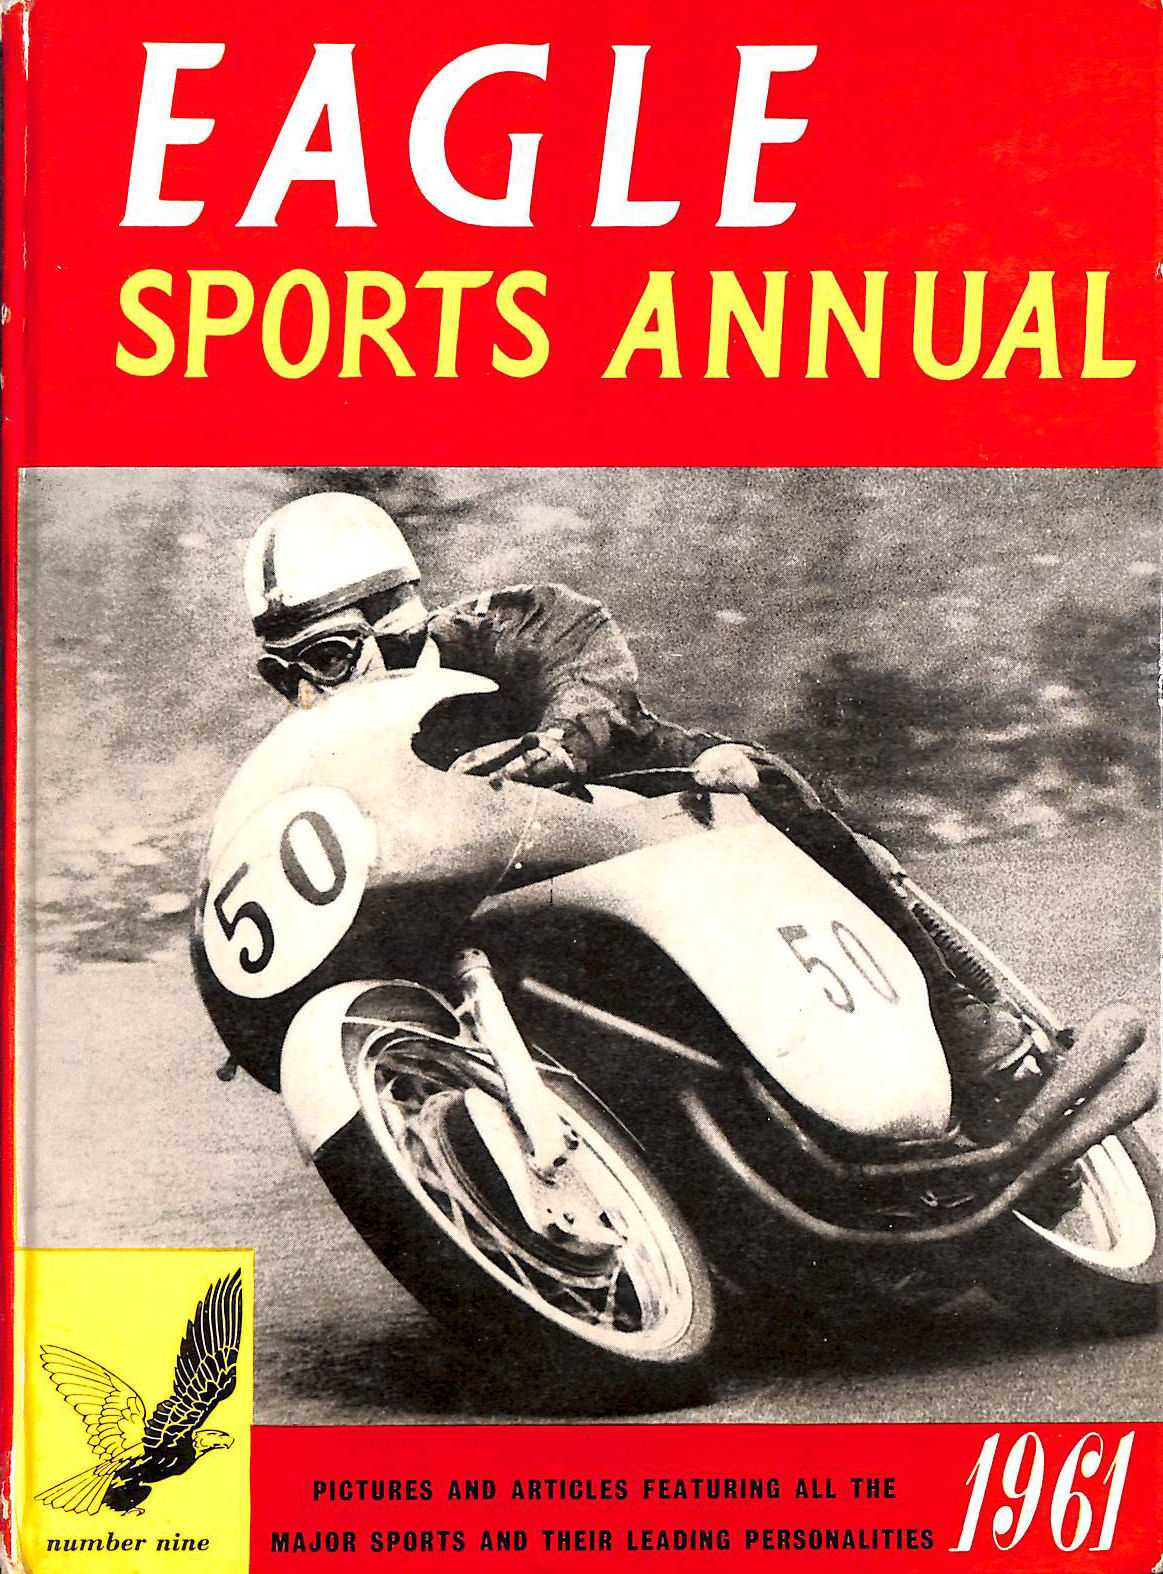 Image for The Ninth Eagle Sports Annual 1961